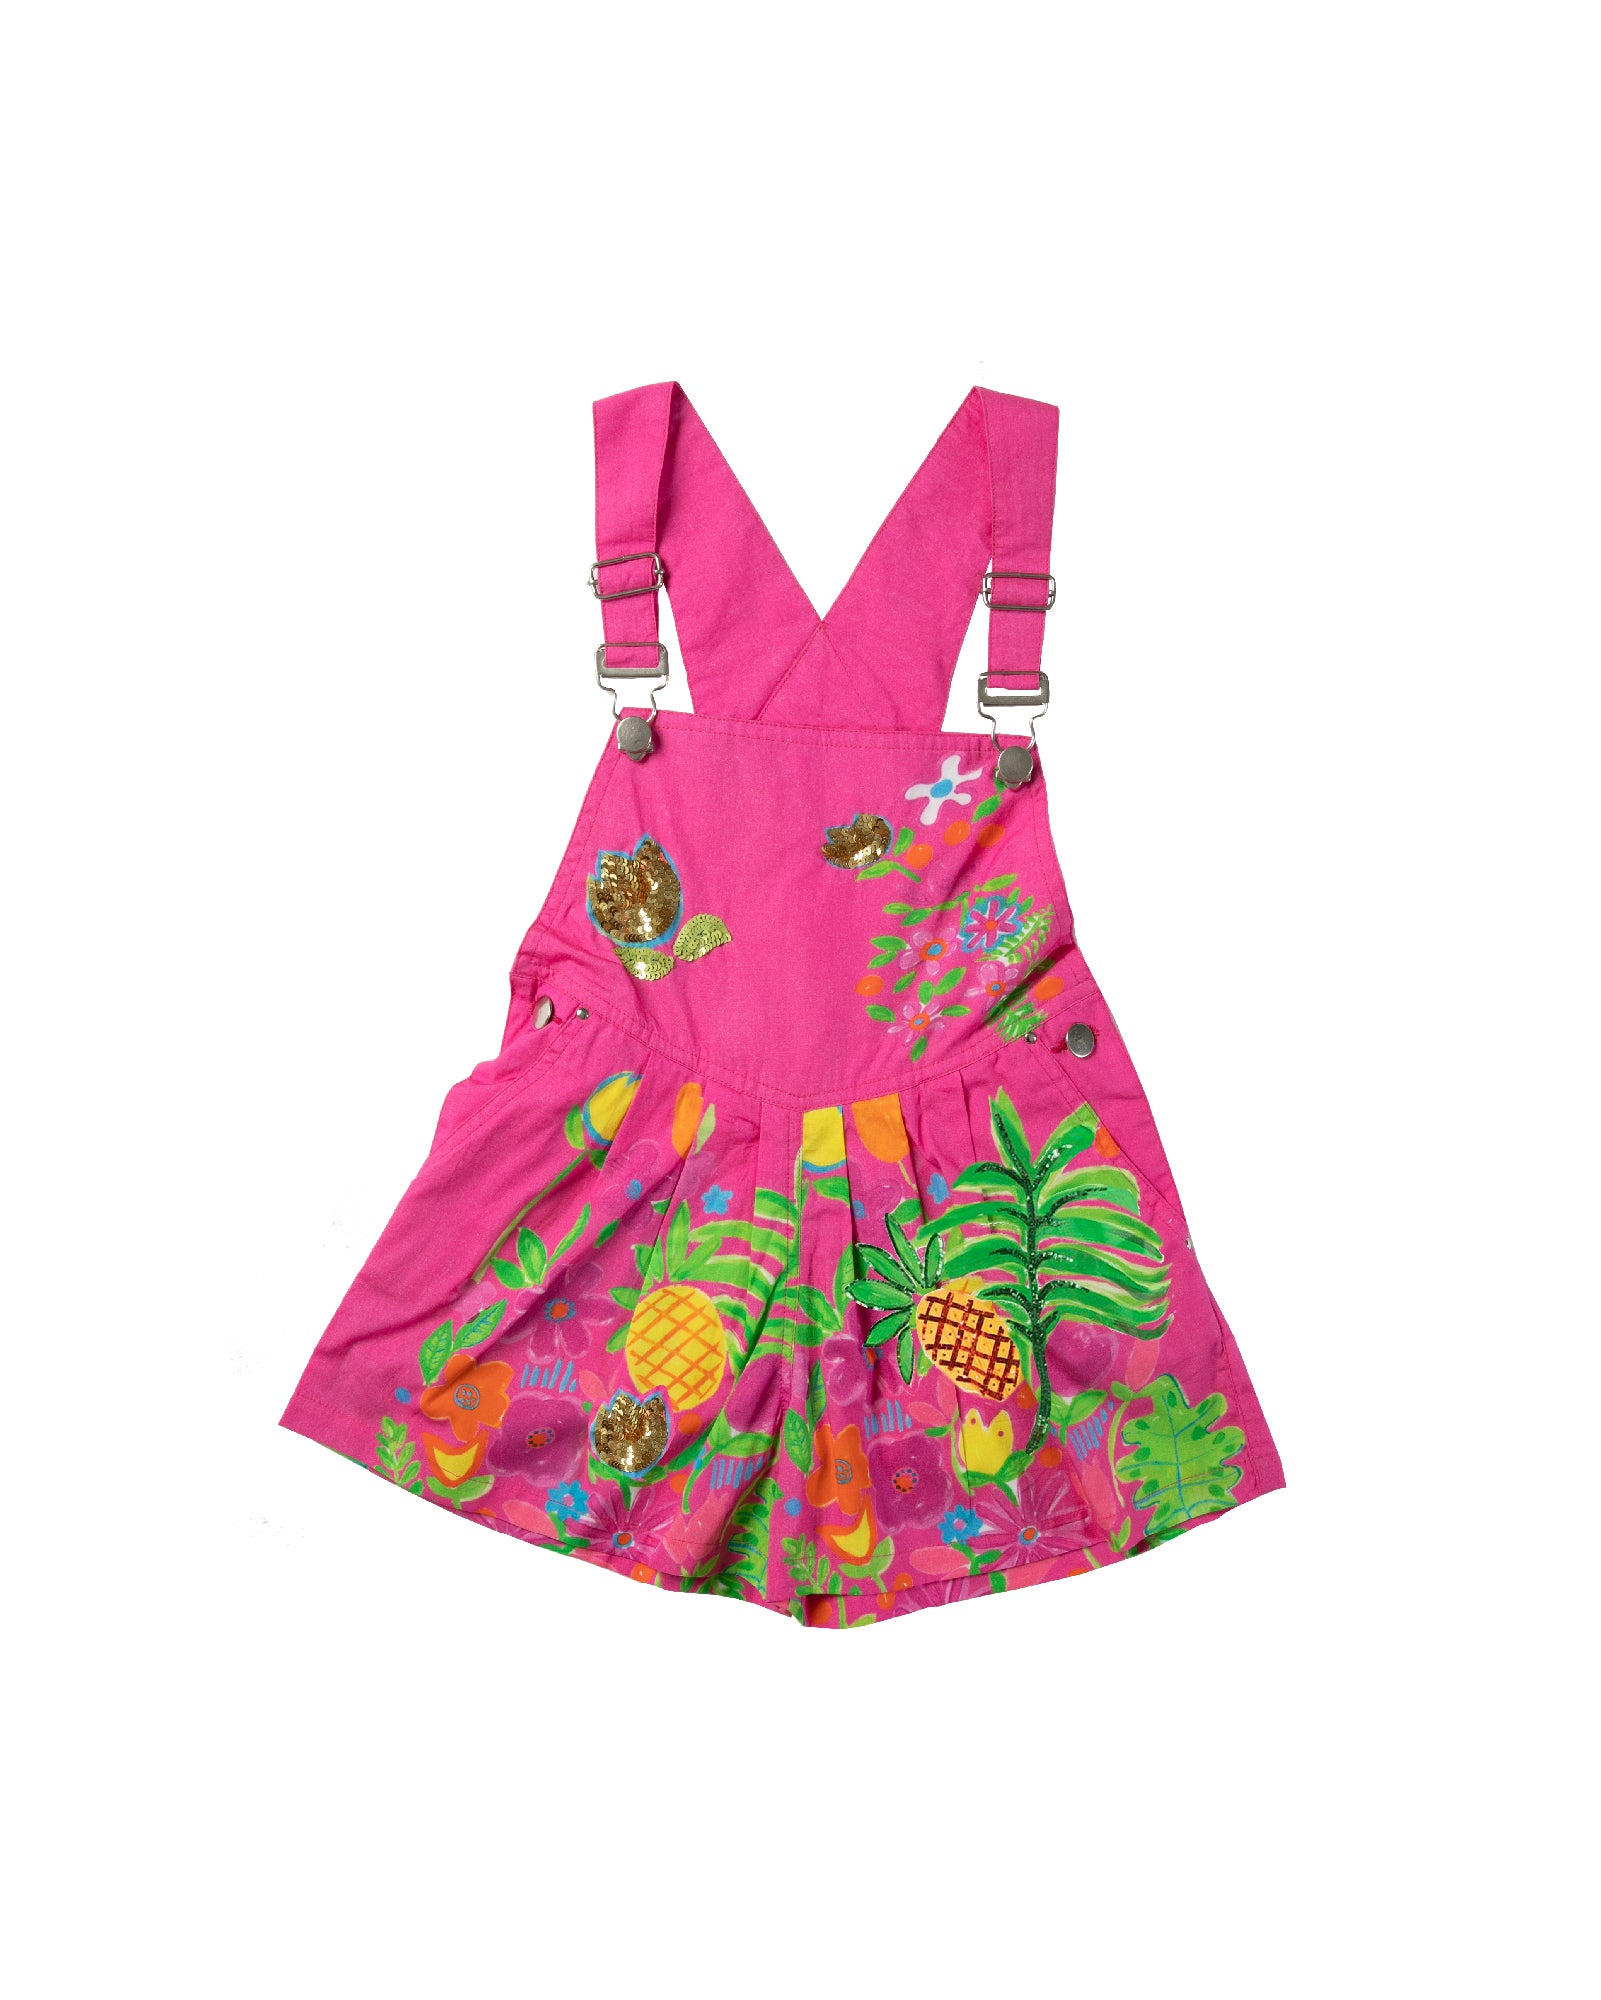 The Tropical Valley Overalls by Bonita Bambino